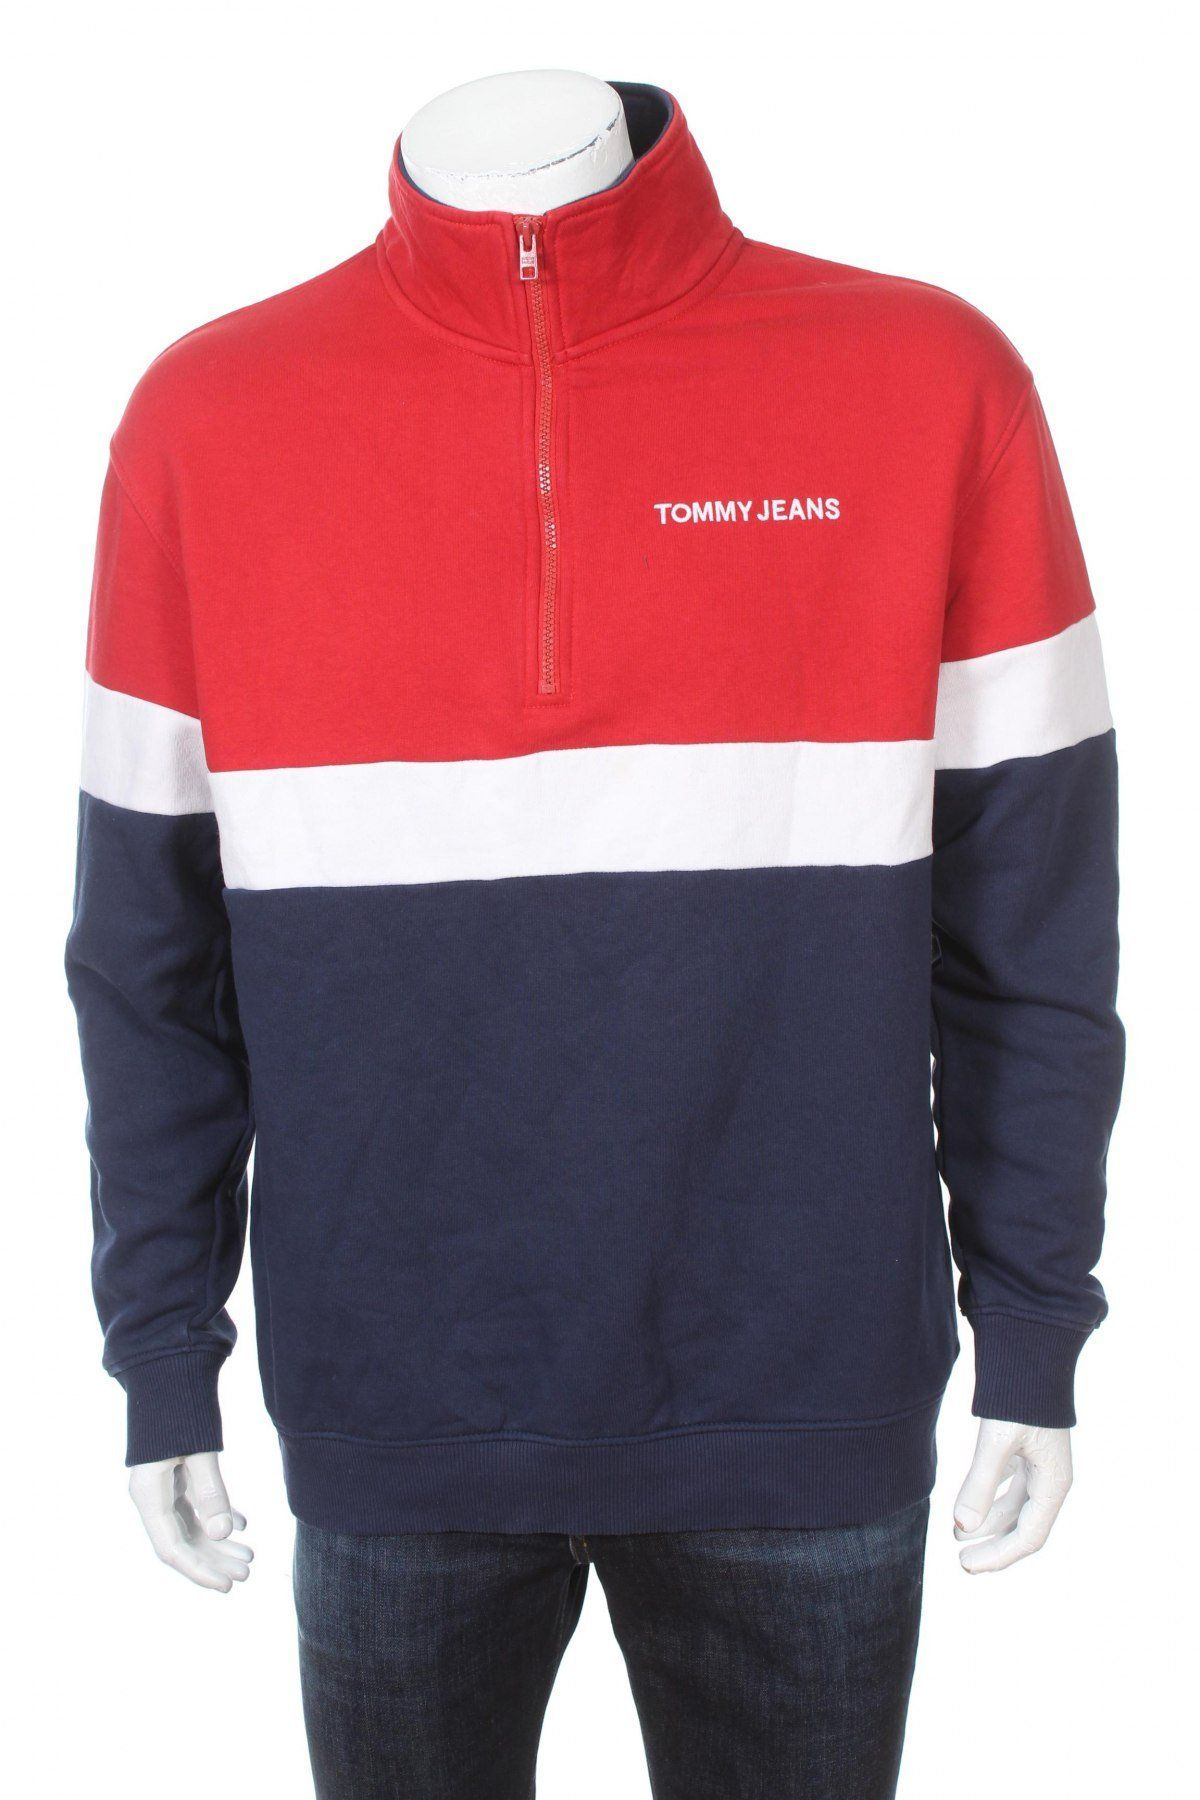 Tommy Jeans Mock Neck Flag Sweatshirt Red White Blue Size L